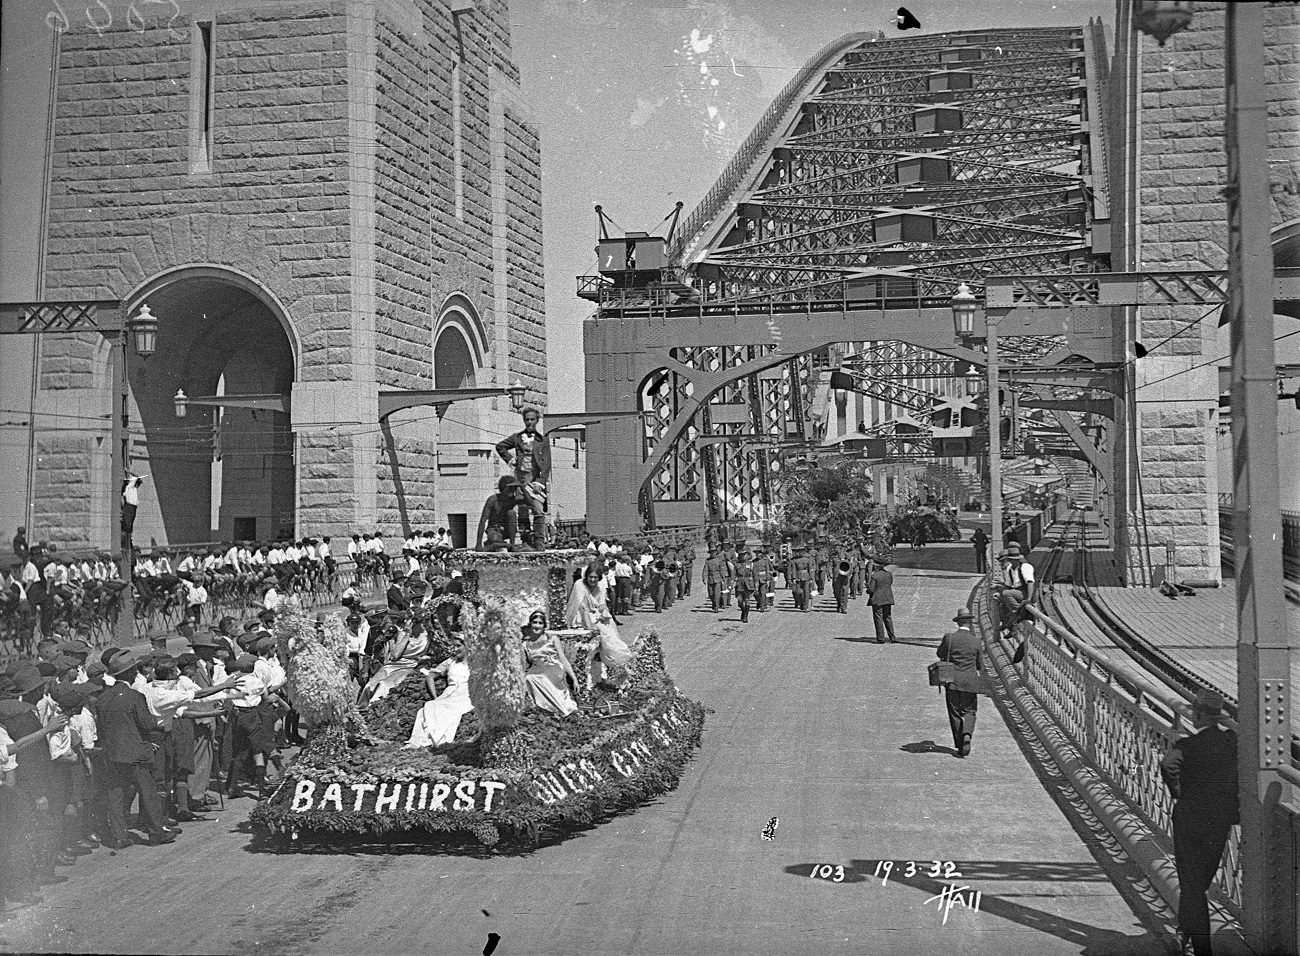 Bathurst float, Sydney Harbour Bridge Celebrations, photographs by Hall and Co, 1932, Home and Away – 38470